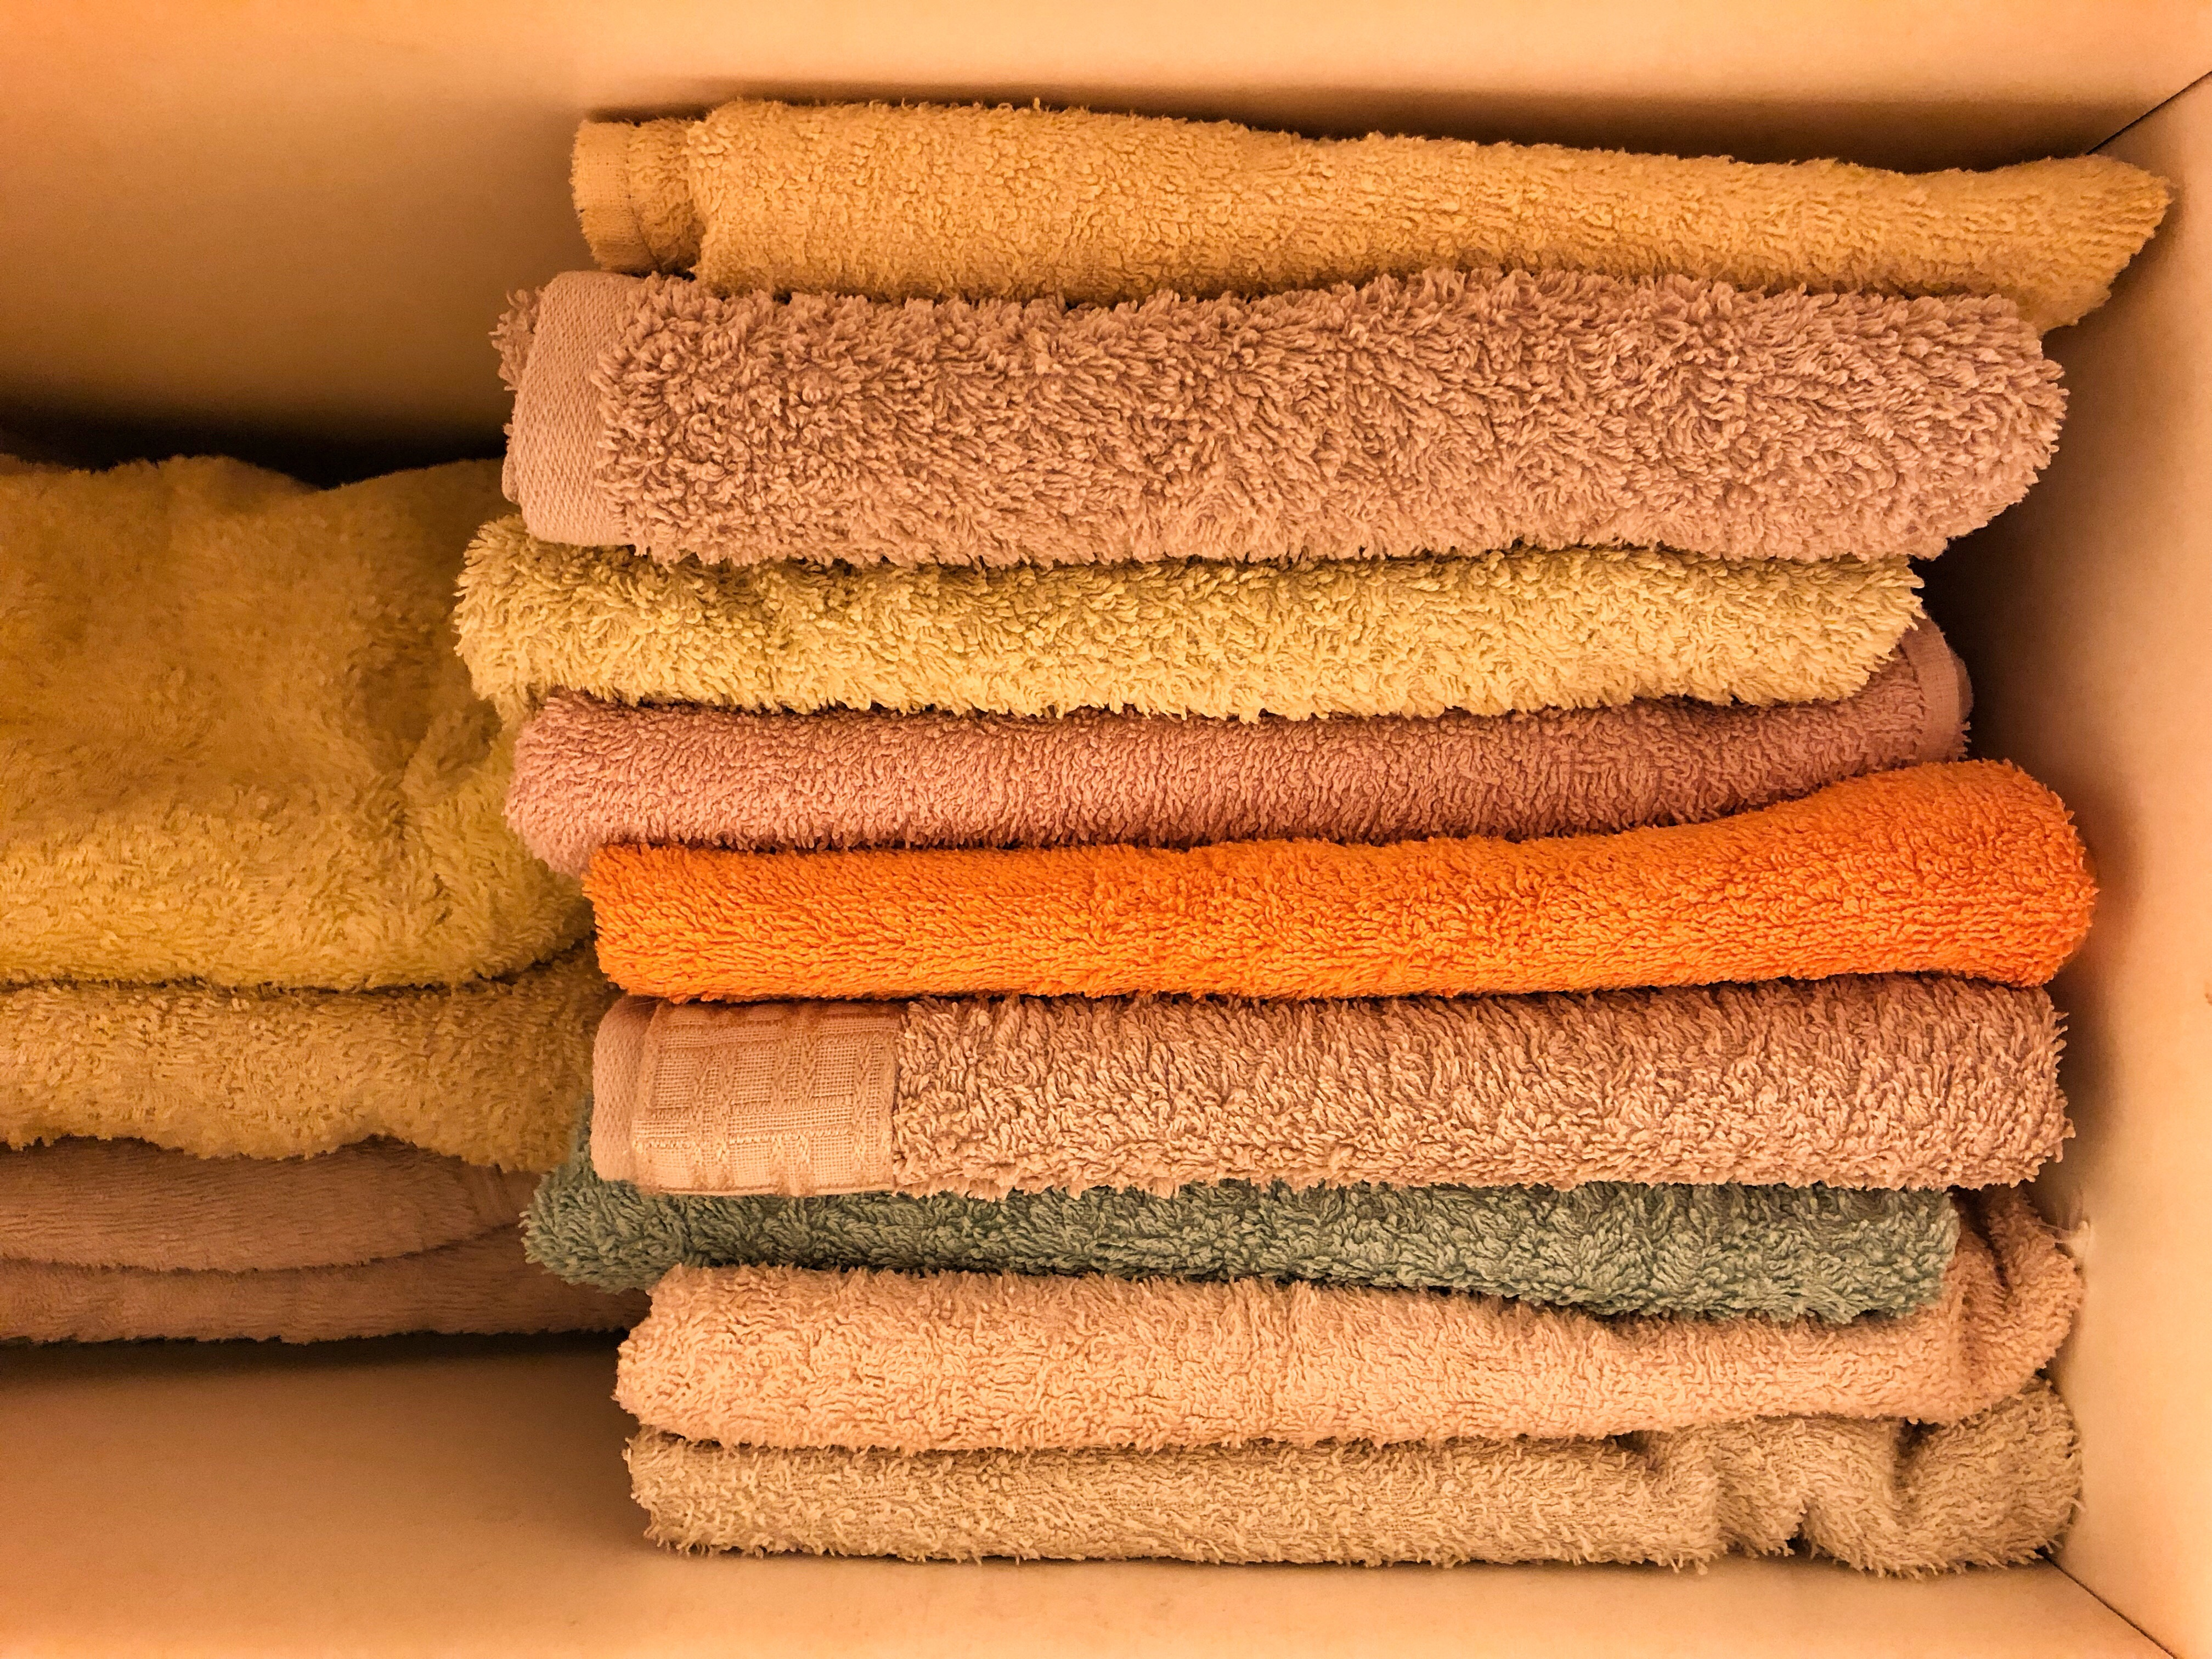 How to Save Nice Towels Ruined by Makeup